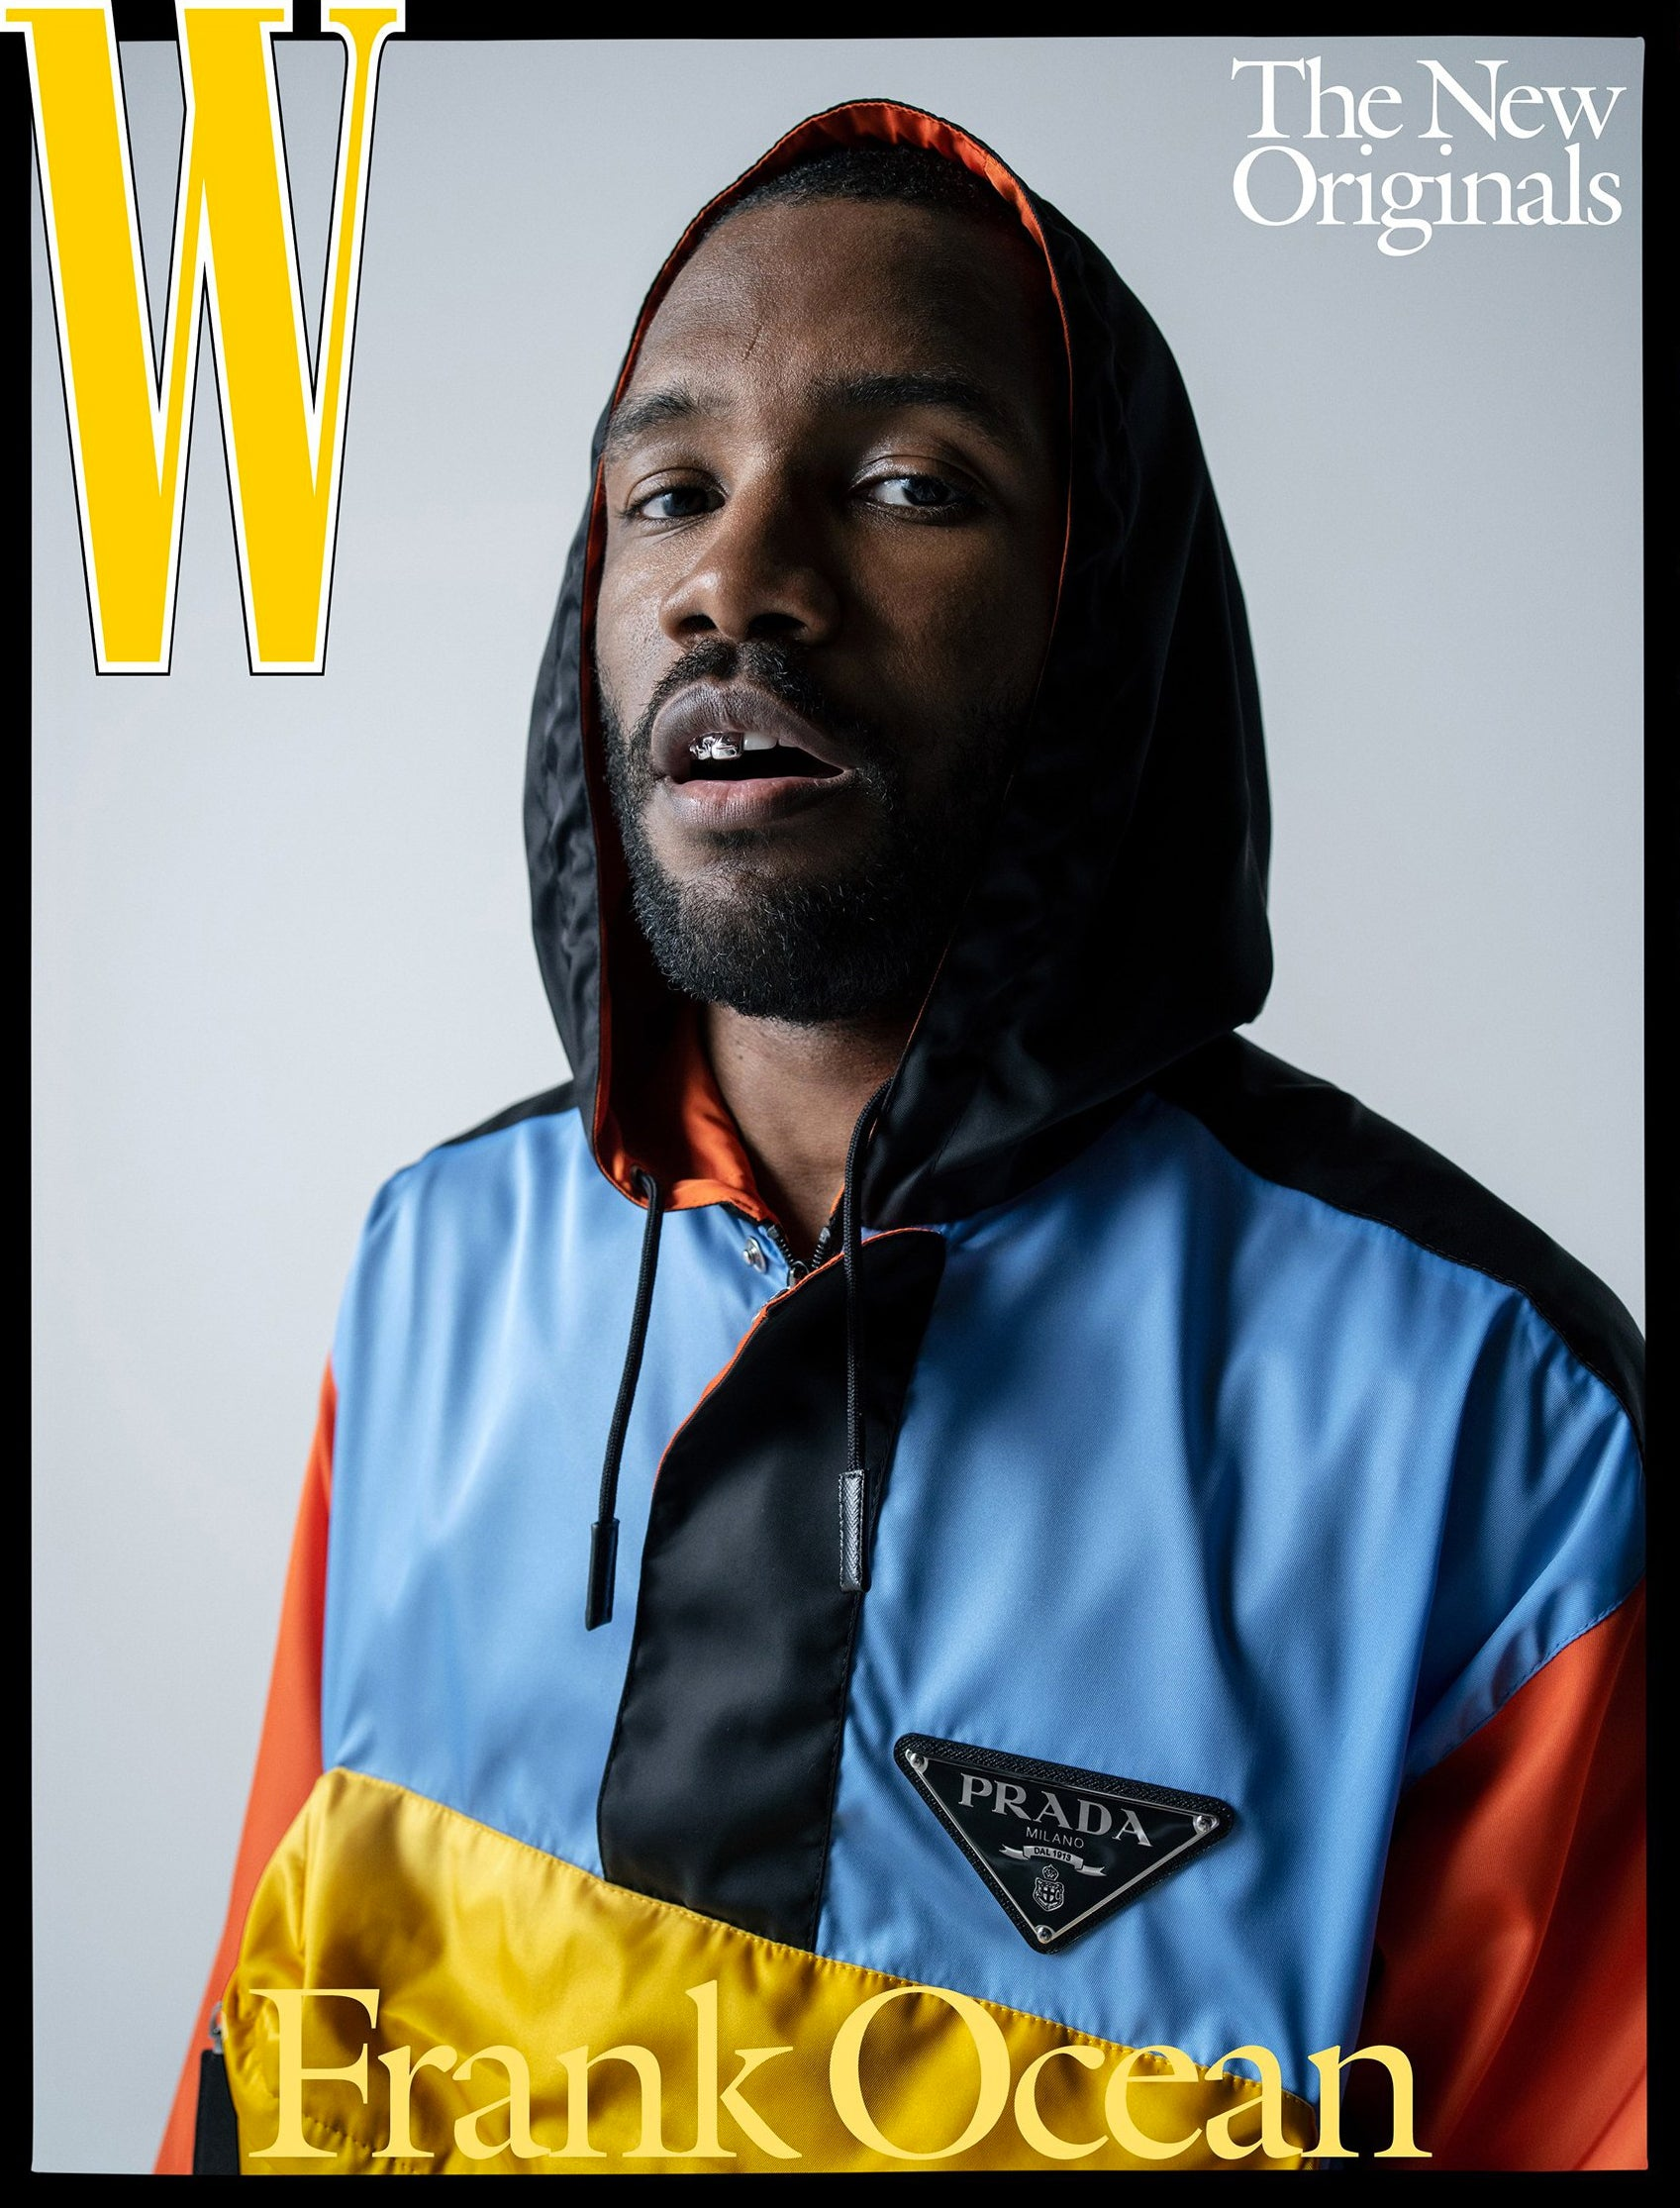 Frank Ocean Covers W Magazine in a Multicolored Prada Jacket